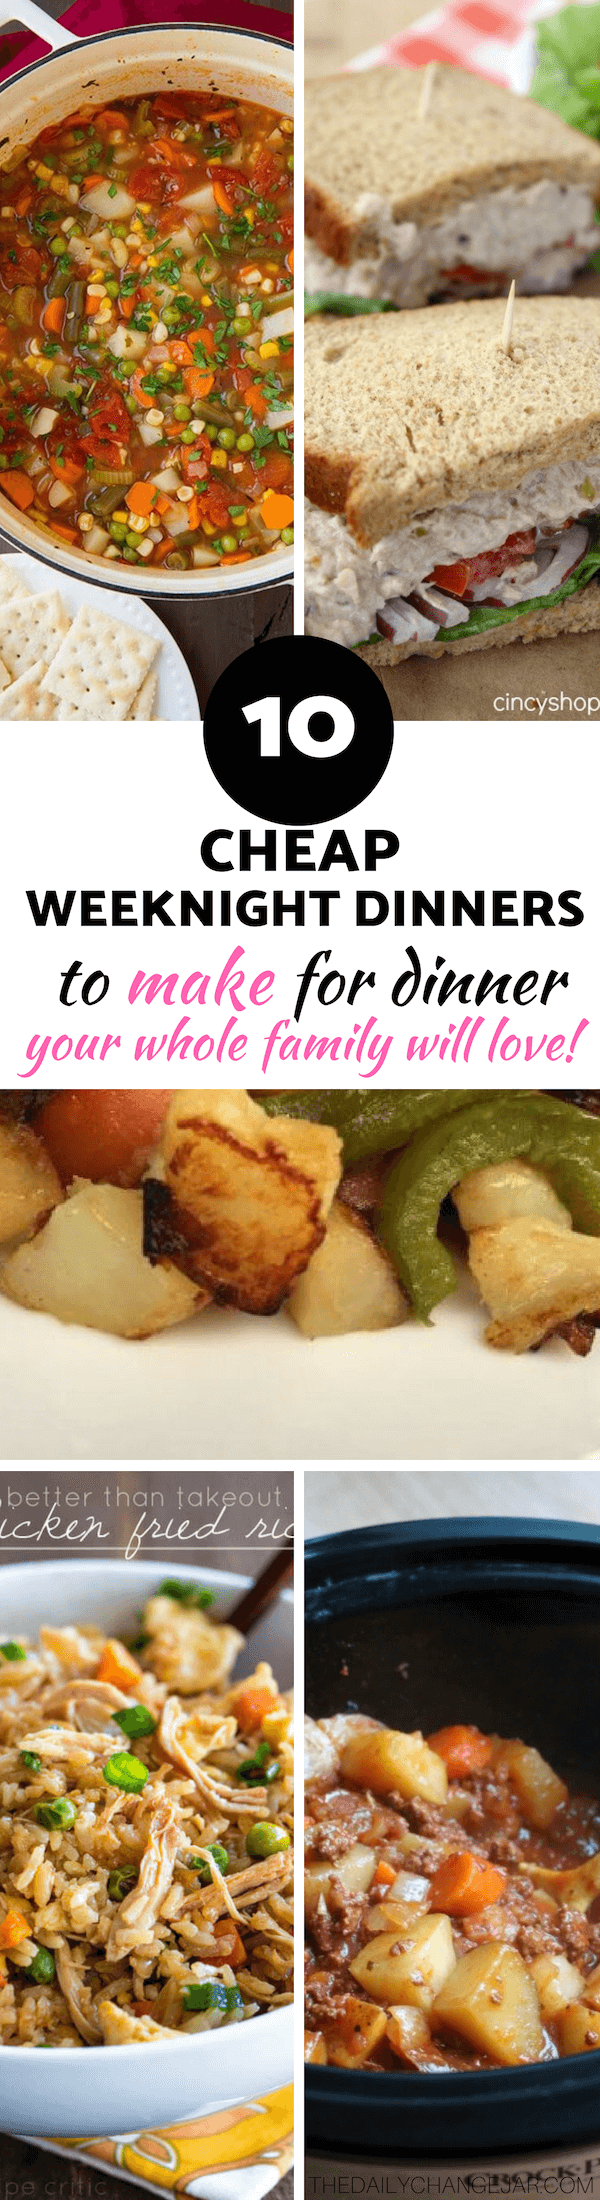 10 Cheap weeknight dinners to make for dinner that your whole family will love. Food makes up a lot of our budgets. But what do you do when money is really tight? Here are 10 frugal meals to make when you're broke. #frugalmeals #frugalmealshealthy #frugalmealsforfour #frugalmealsfortwo #frugalmealsforlargefamilies #frugalmealsandsnacks #frugaldinners #frugaldinnersfamilies #frugaldinnerssavingmoney #frugaldinnersfor4 #frugaldinnersrecipes #frugaldinnersvegan